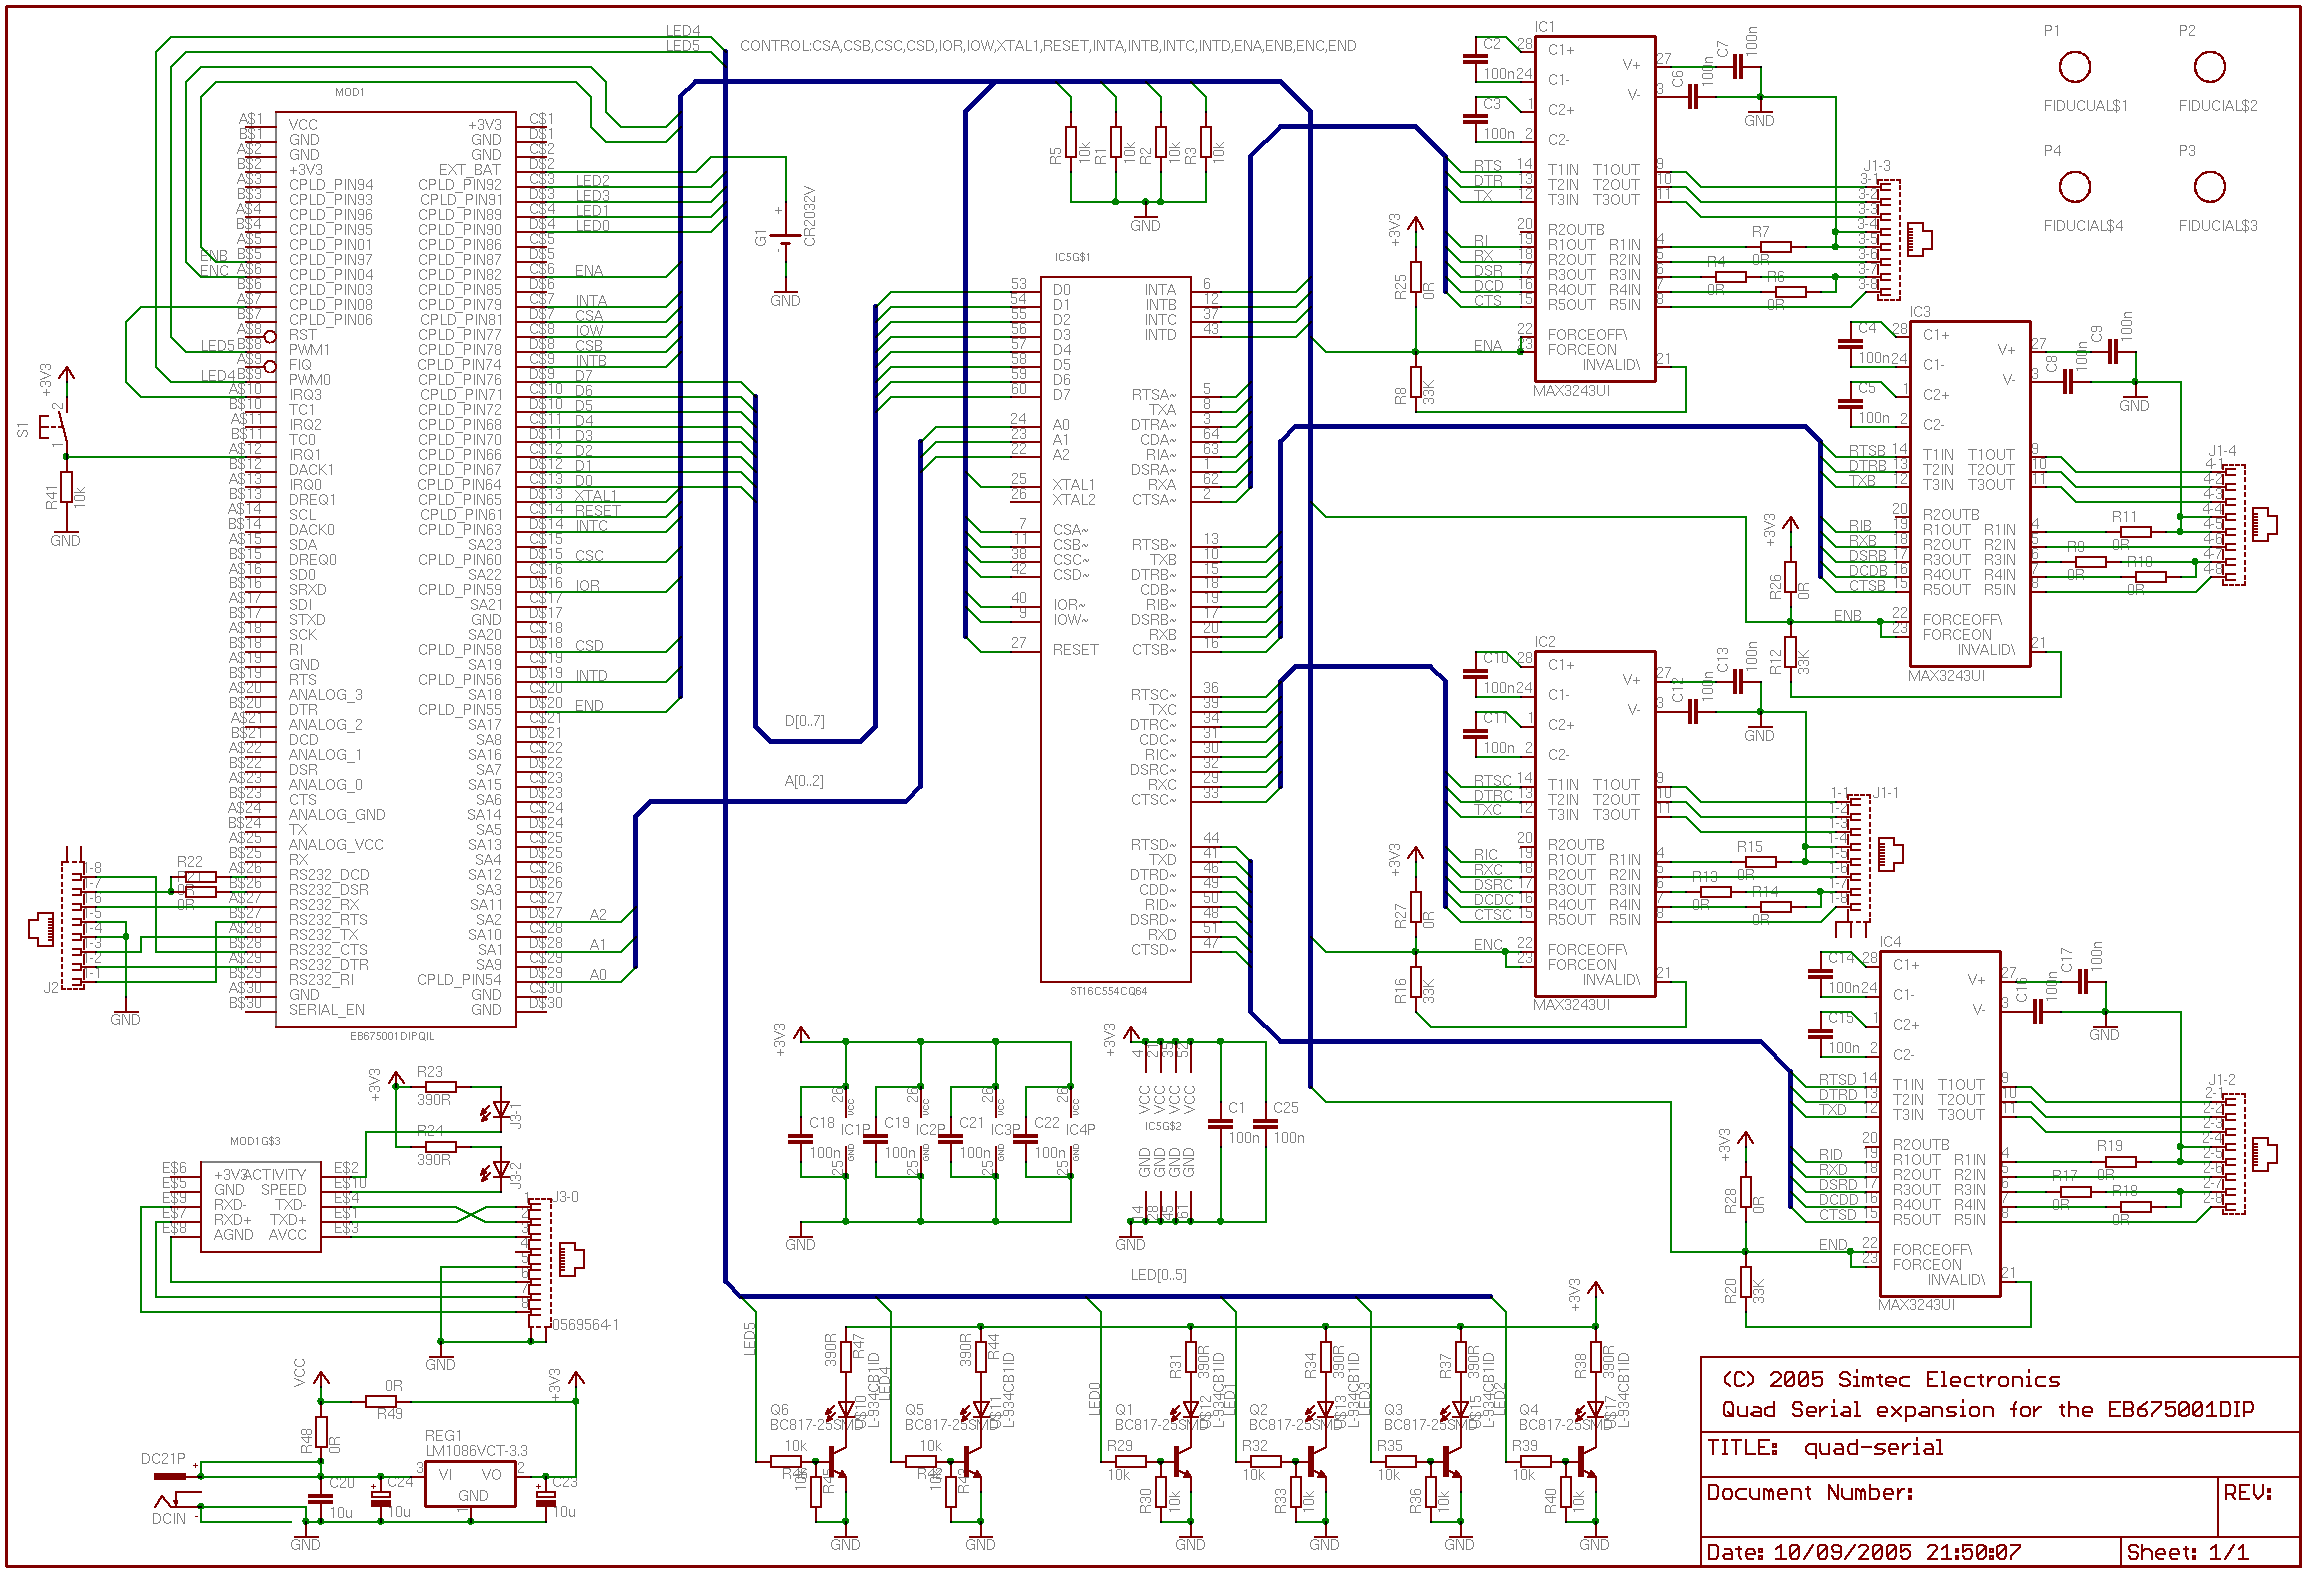 Network Switch Circuit Diagram Excellent Electrical Wiring Usbprintershareswitchcircuitdiagramjpg Another Files